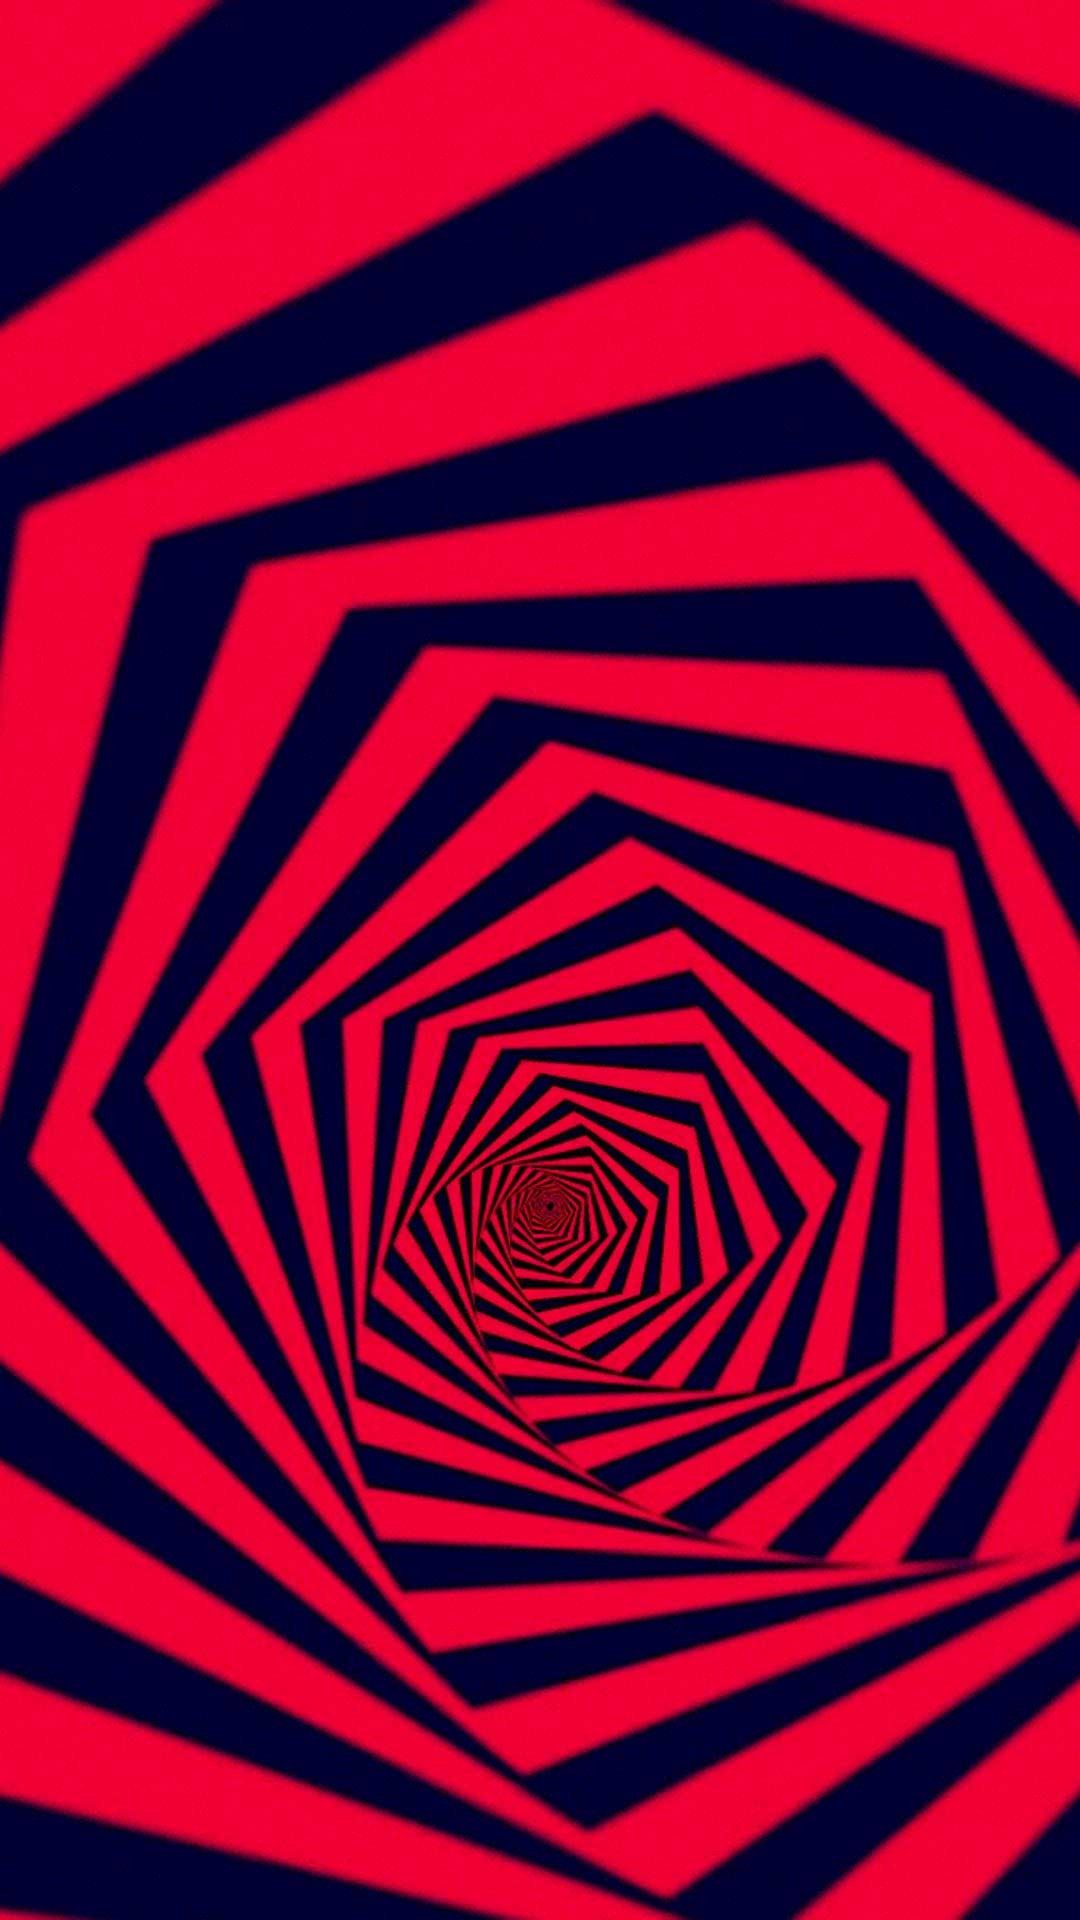 1080x1920 70+ Red Swirl Wallpapers on WallpaperPlay